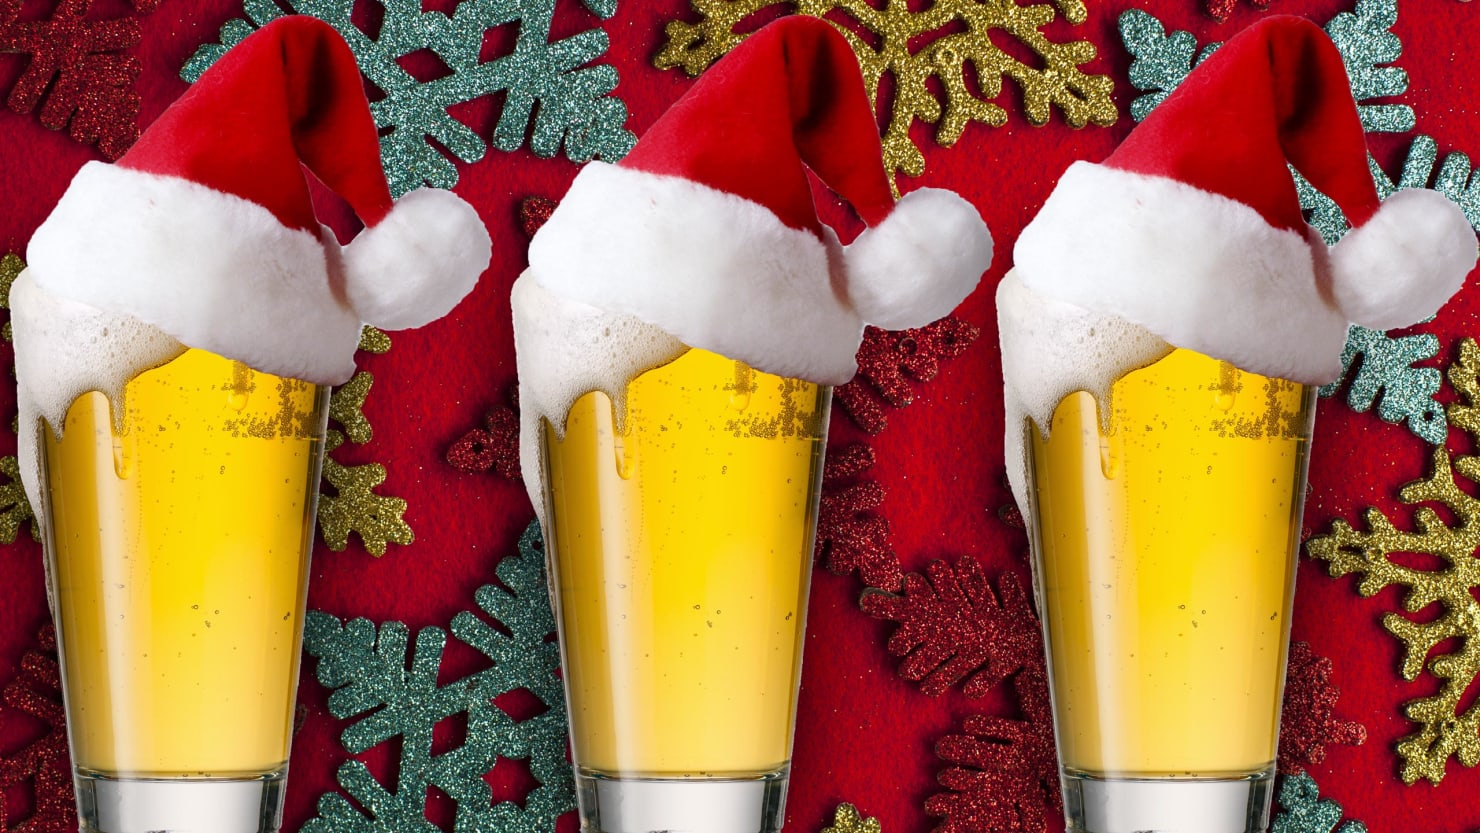 thedailybeast.com - Lew Bryson - It's the Most Wonderful Time of the Year-For a Beer!